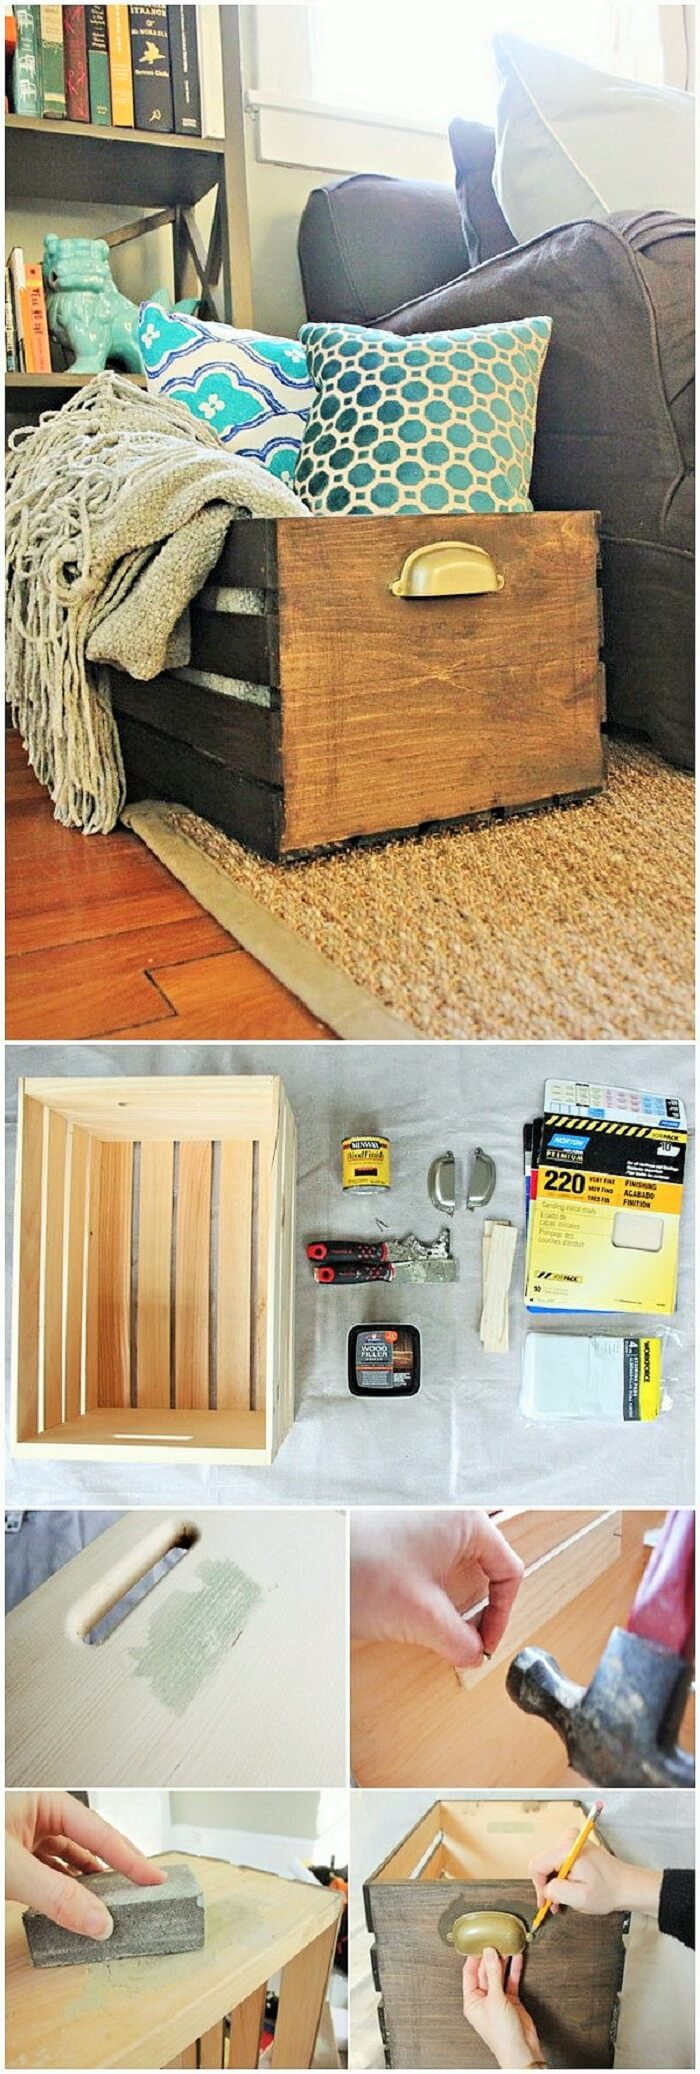 DIY-wooden-Pallets-projects-Ideas (7)